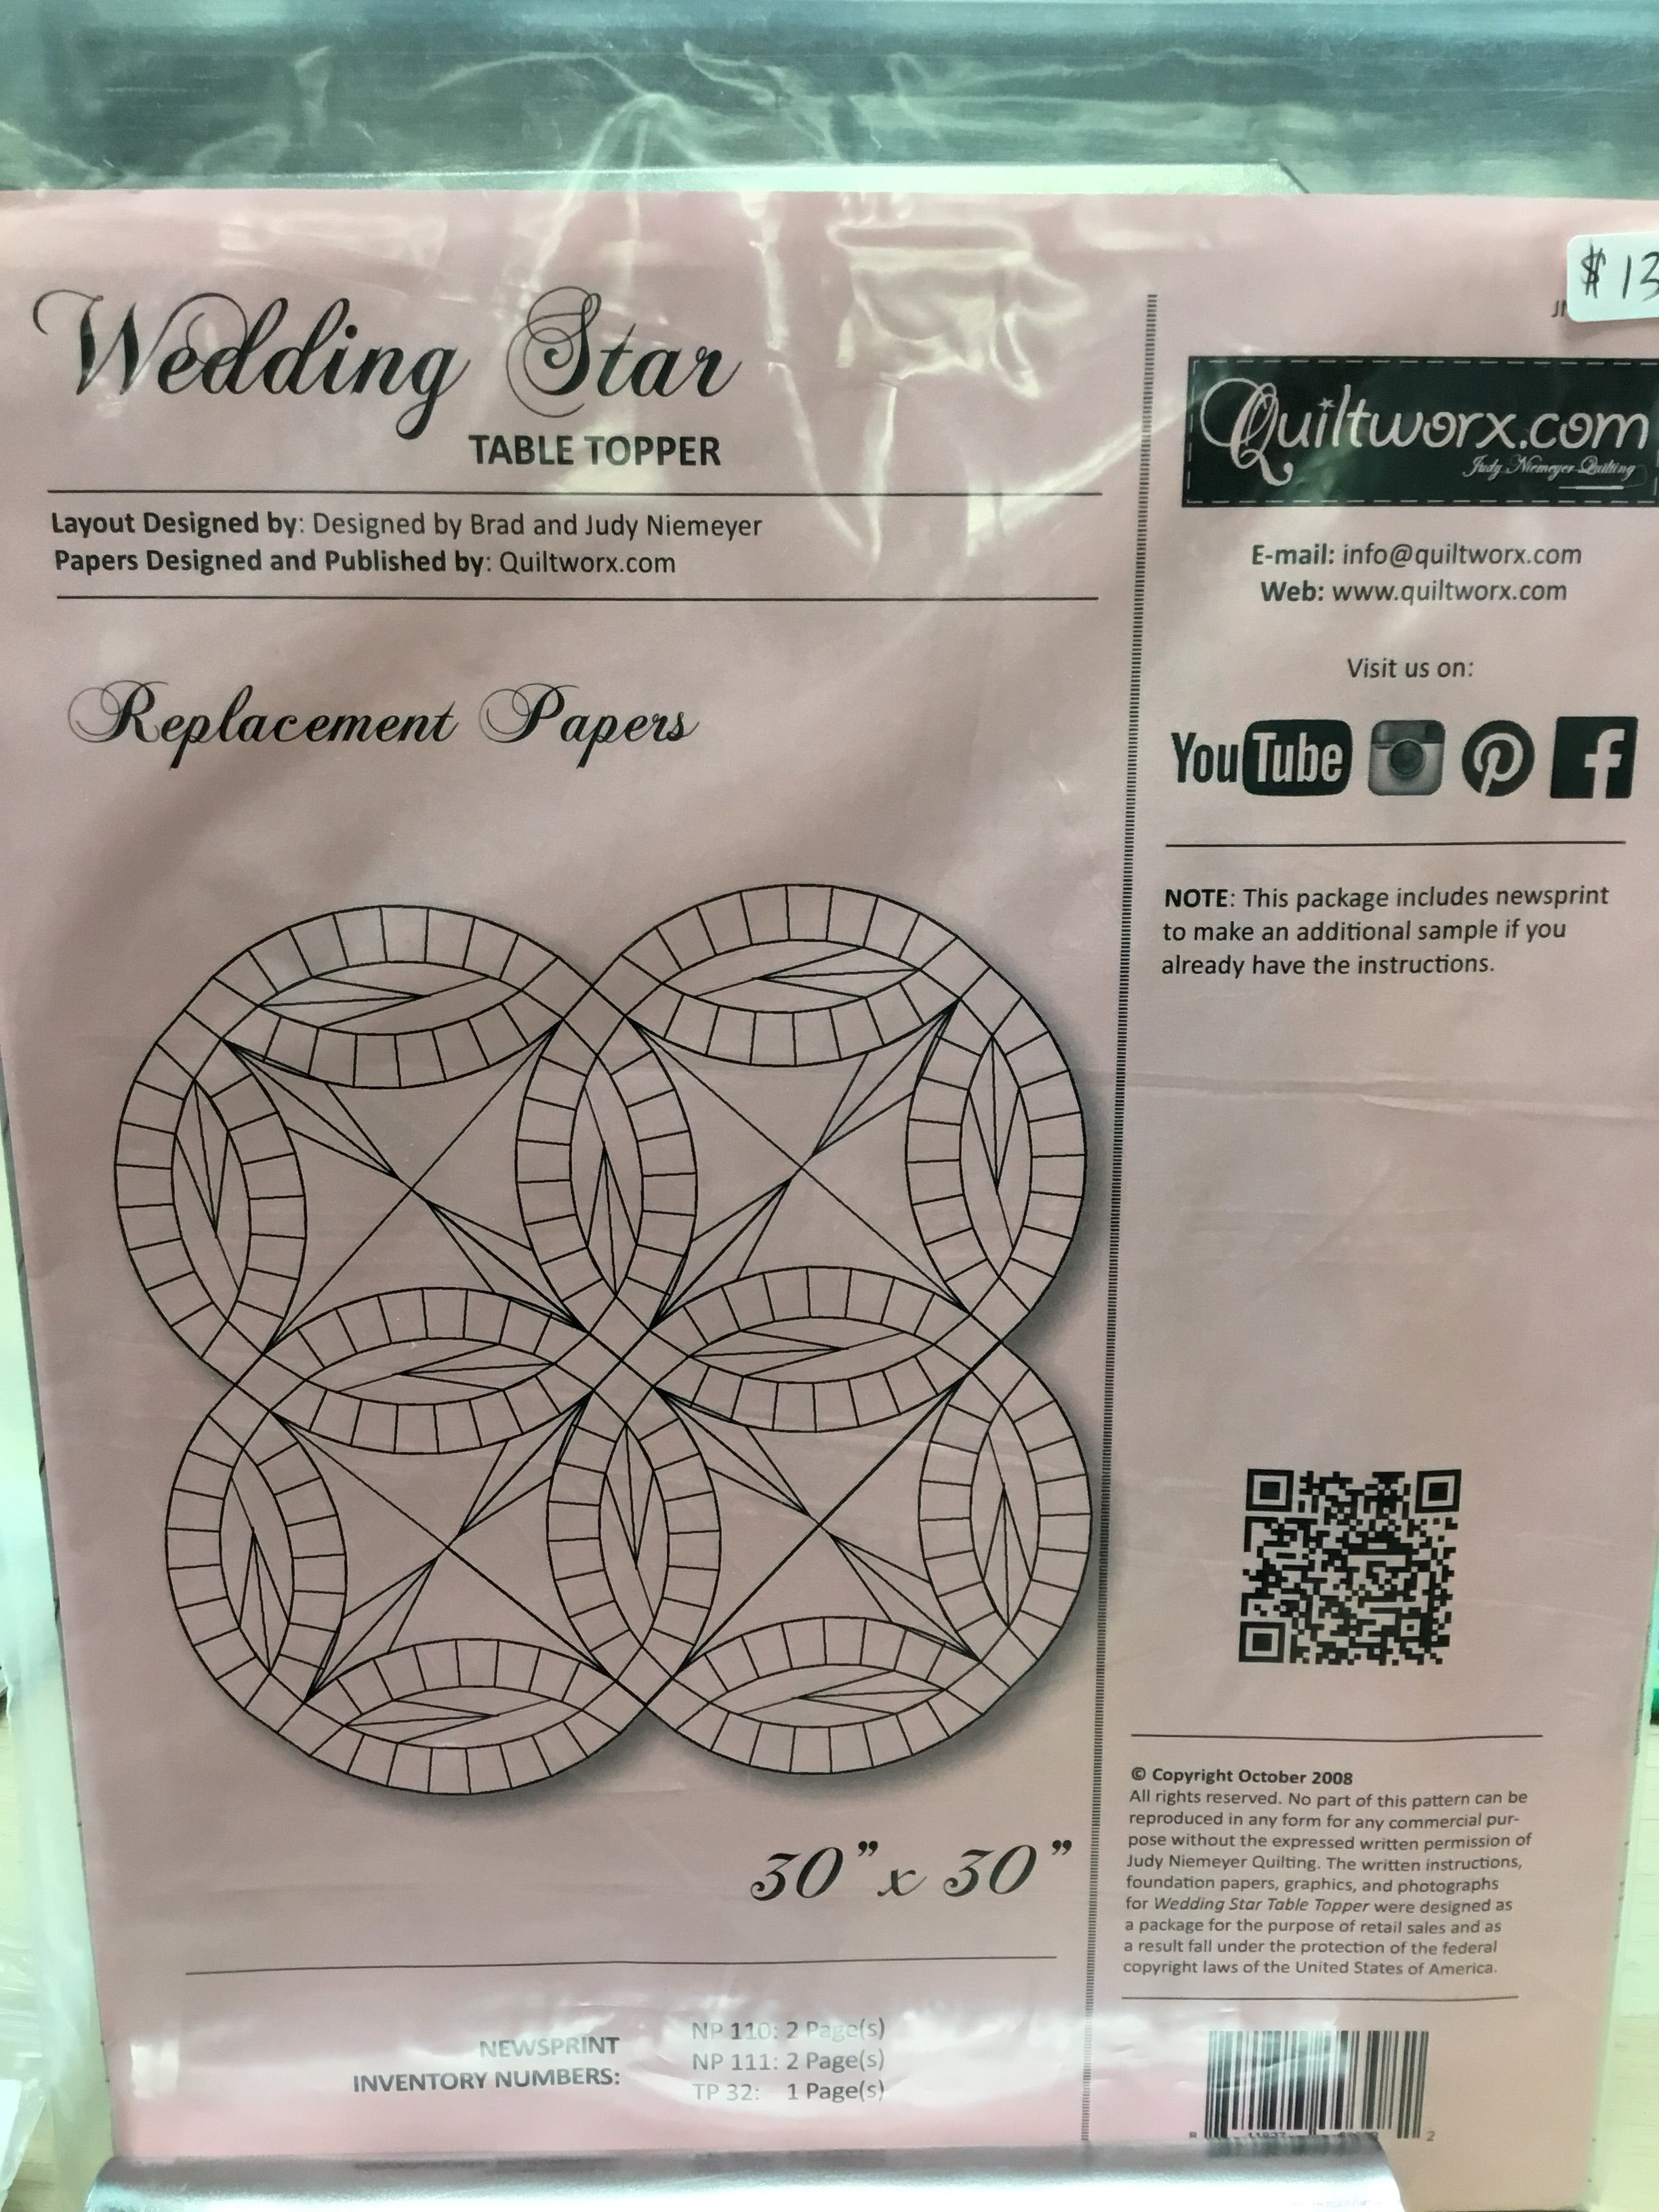 Wedding Star Table Topper Replacement Papers